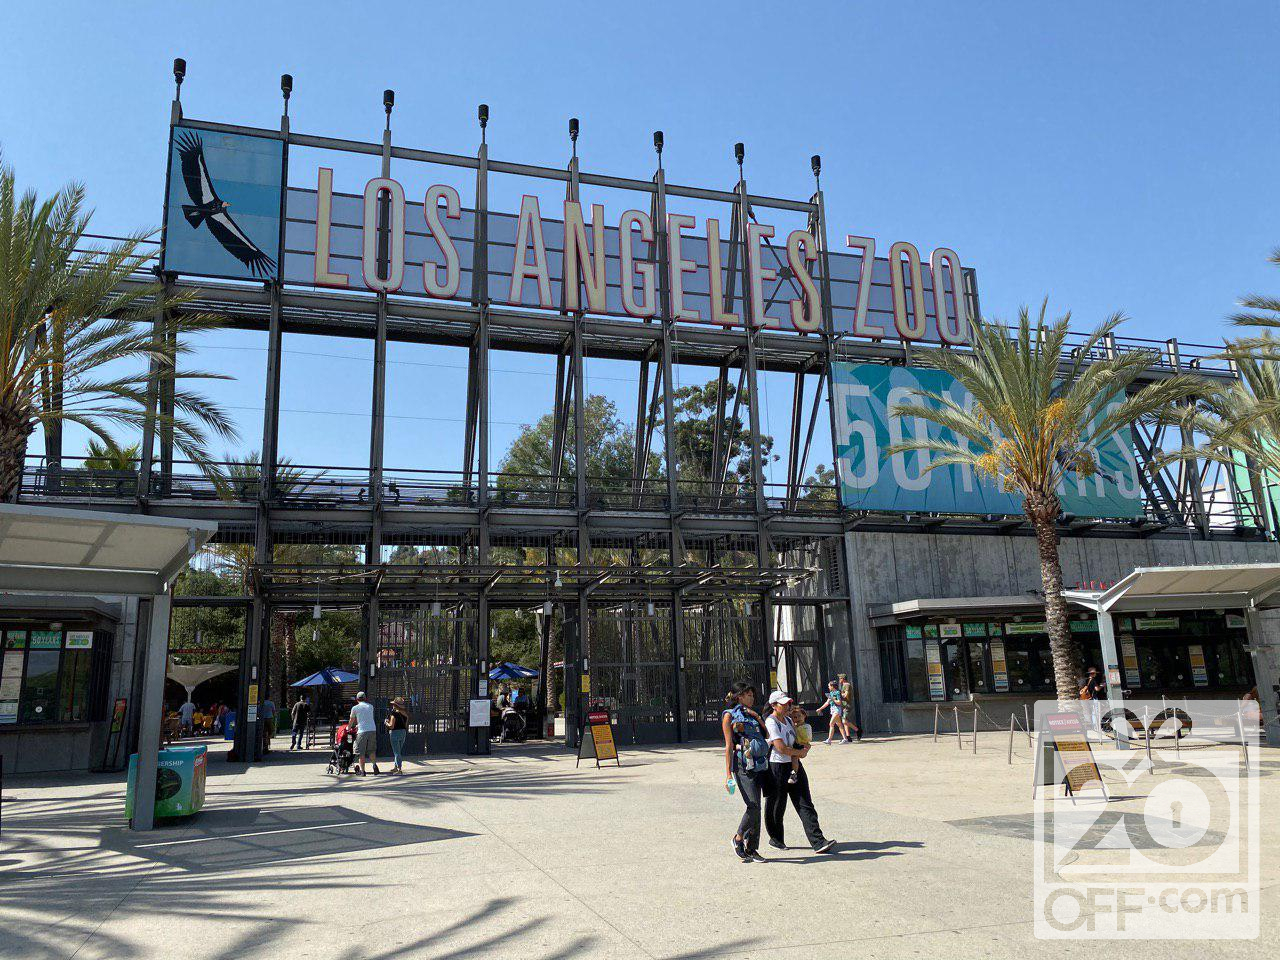 Los Angeles Zoo with Groupon Discount